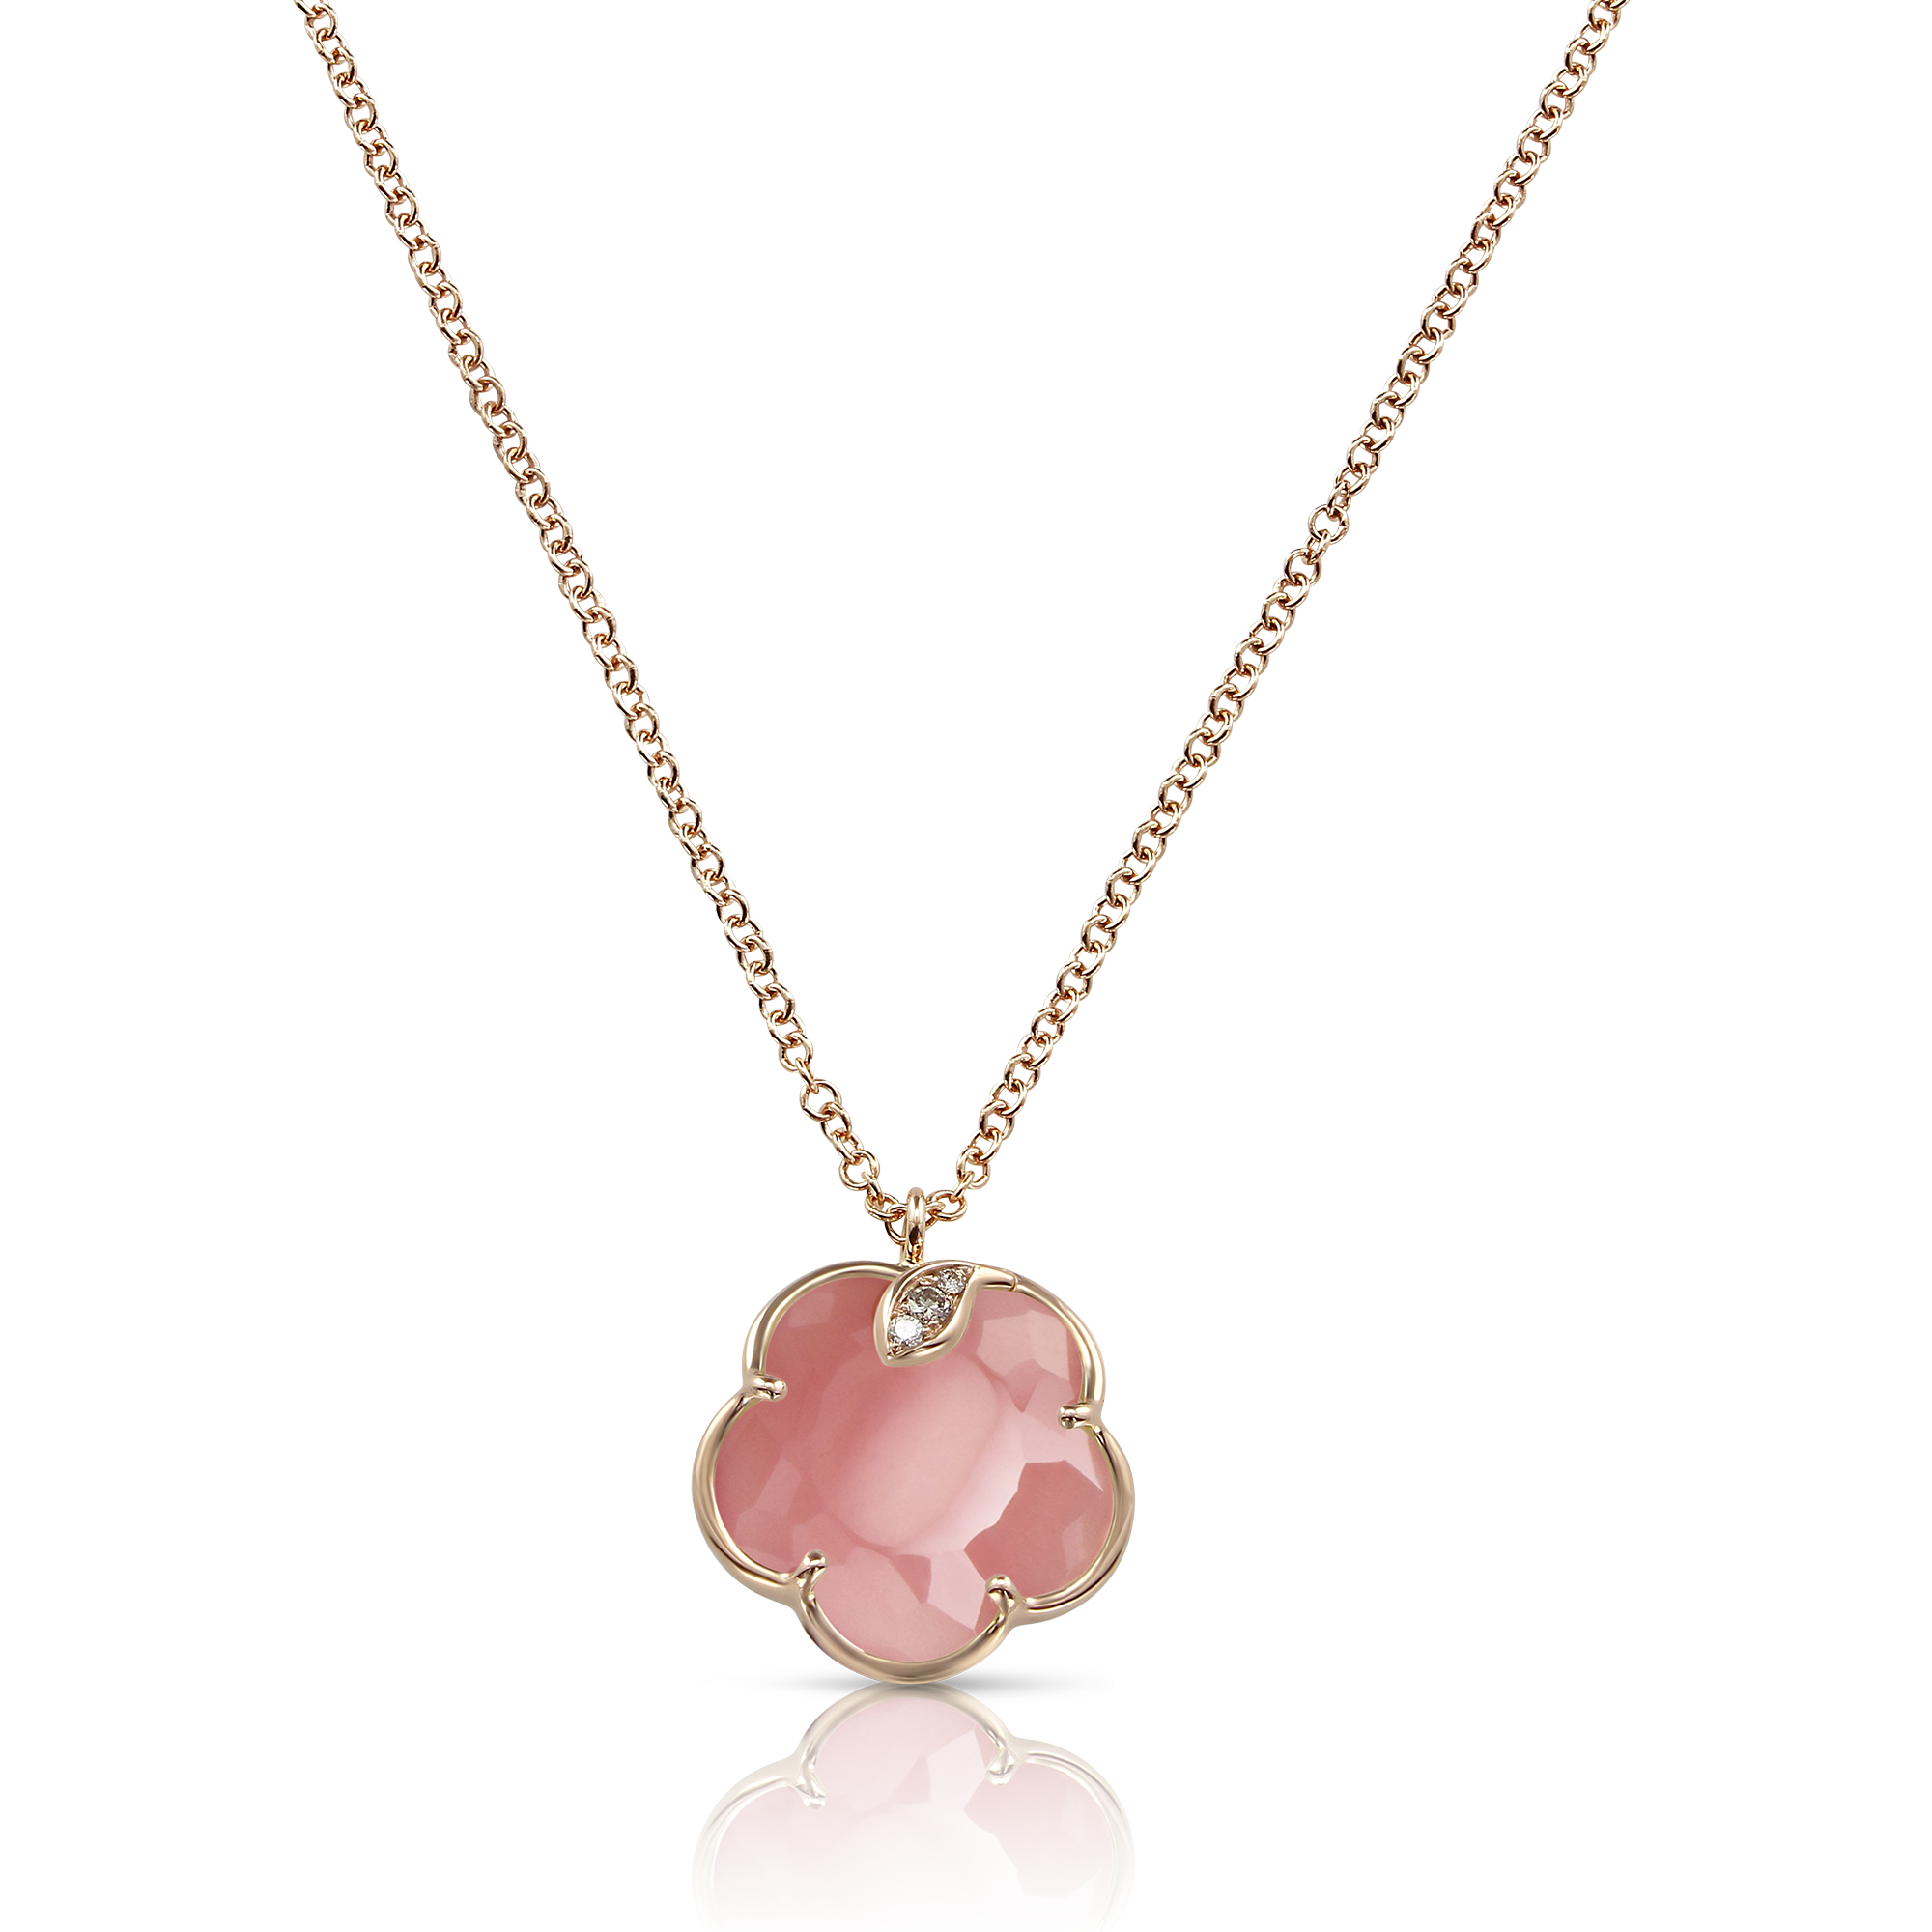 NEW 18k Rose Gold Petit Joli Necklace with Pink Chalcedony, White and Champagne Diamonds